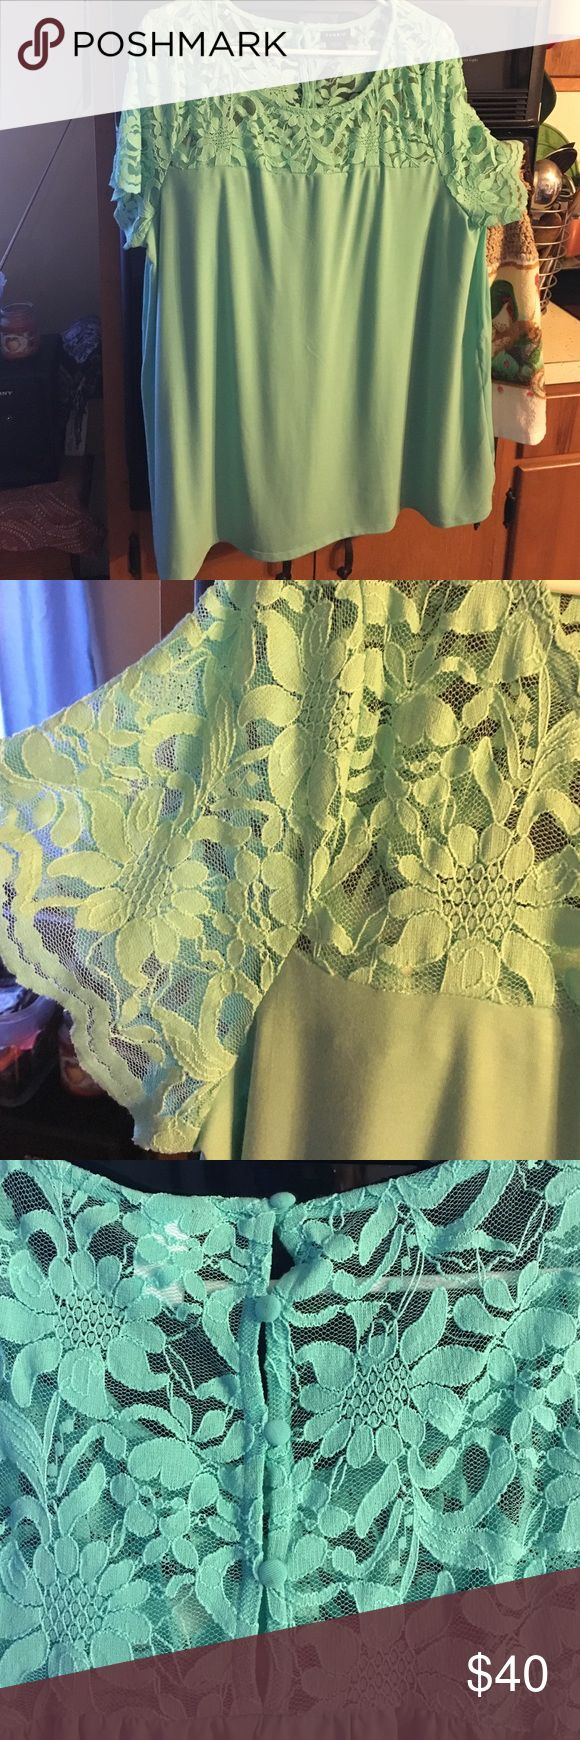 Mint green shirt Mint green shirt with lace shirt sleeves. Never worn. Back has four buttons. torrid Tops